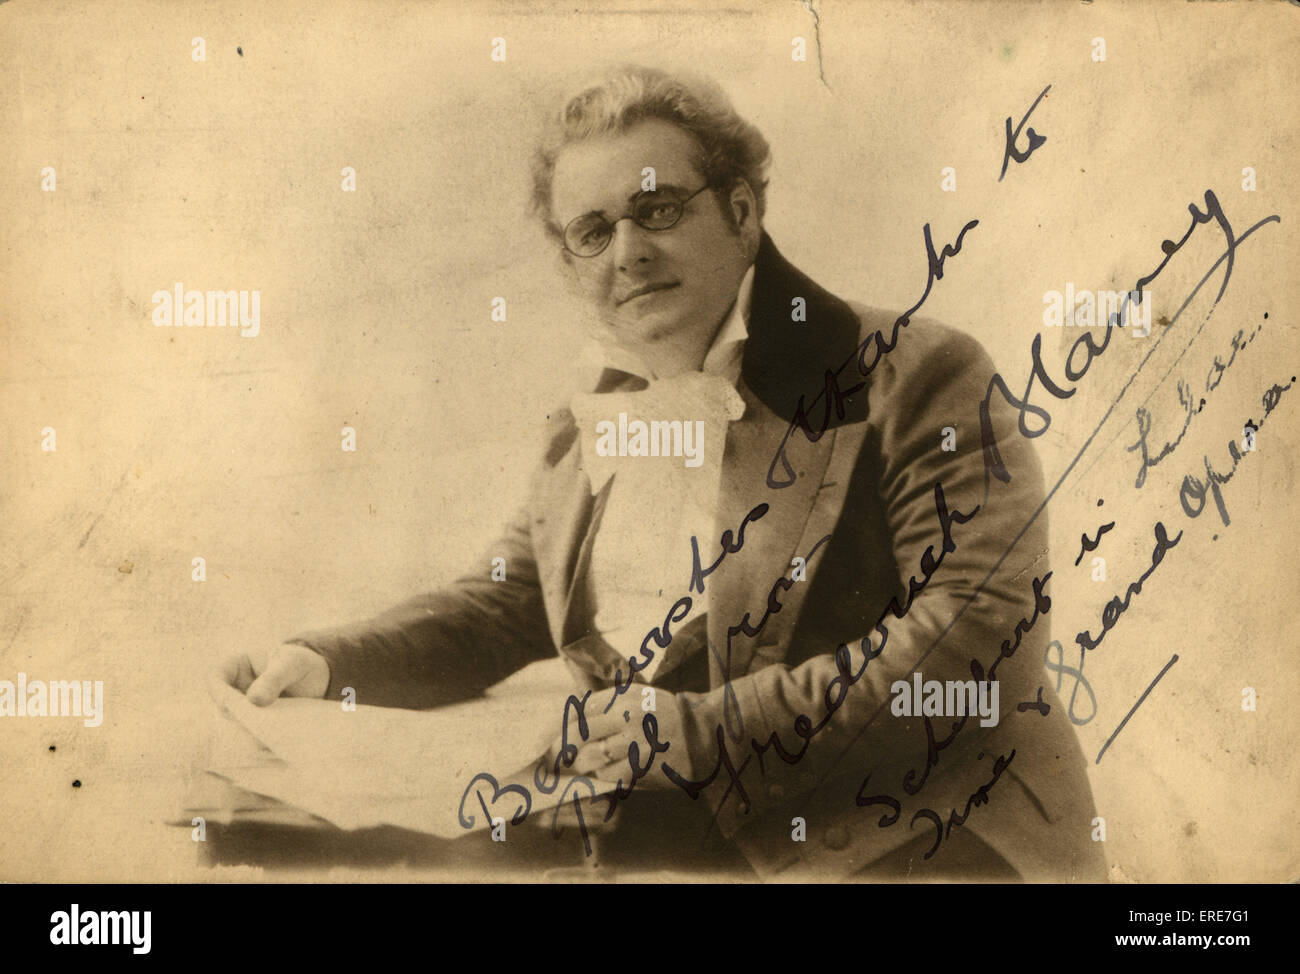 Frederick Blamey as Franz Schubert, impersonation. Postcard. - Stock Image